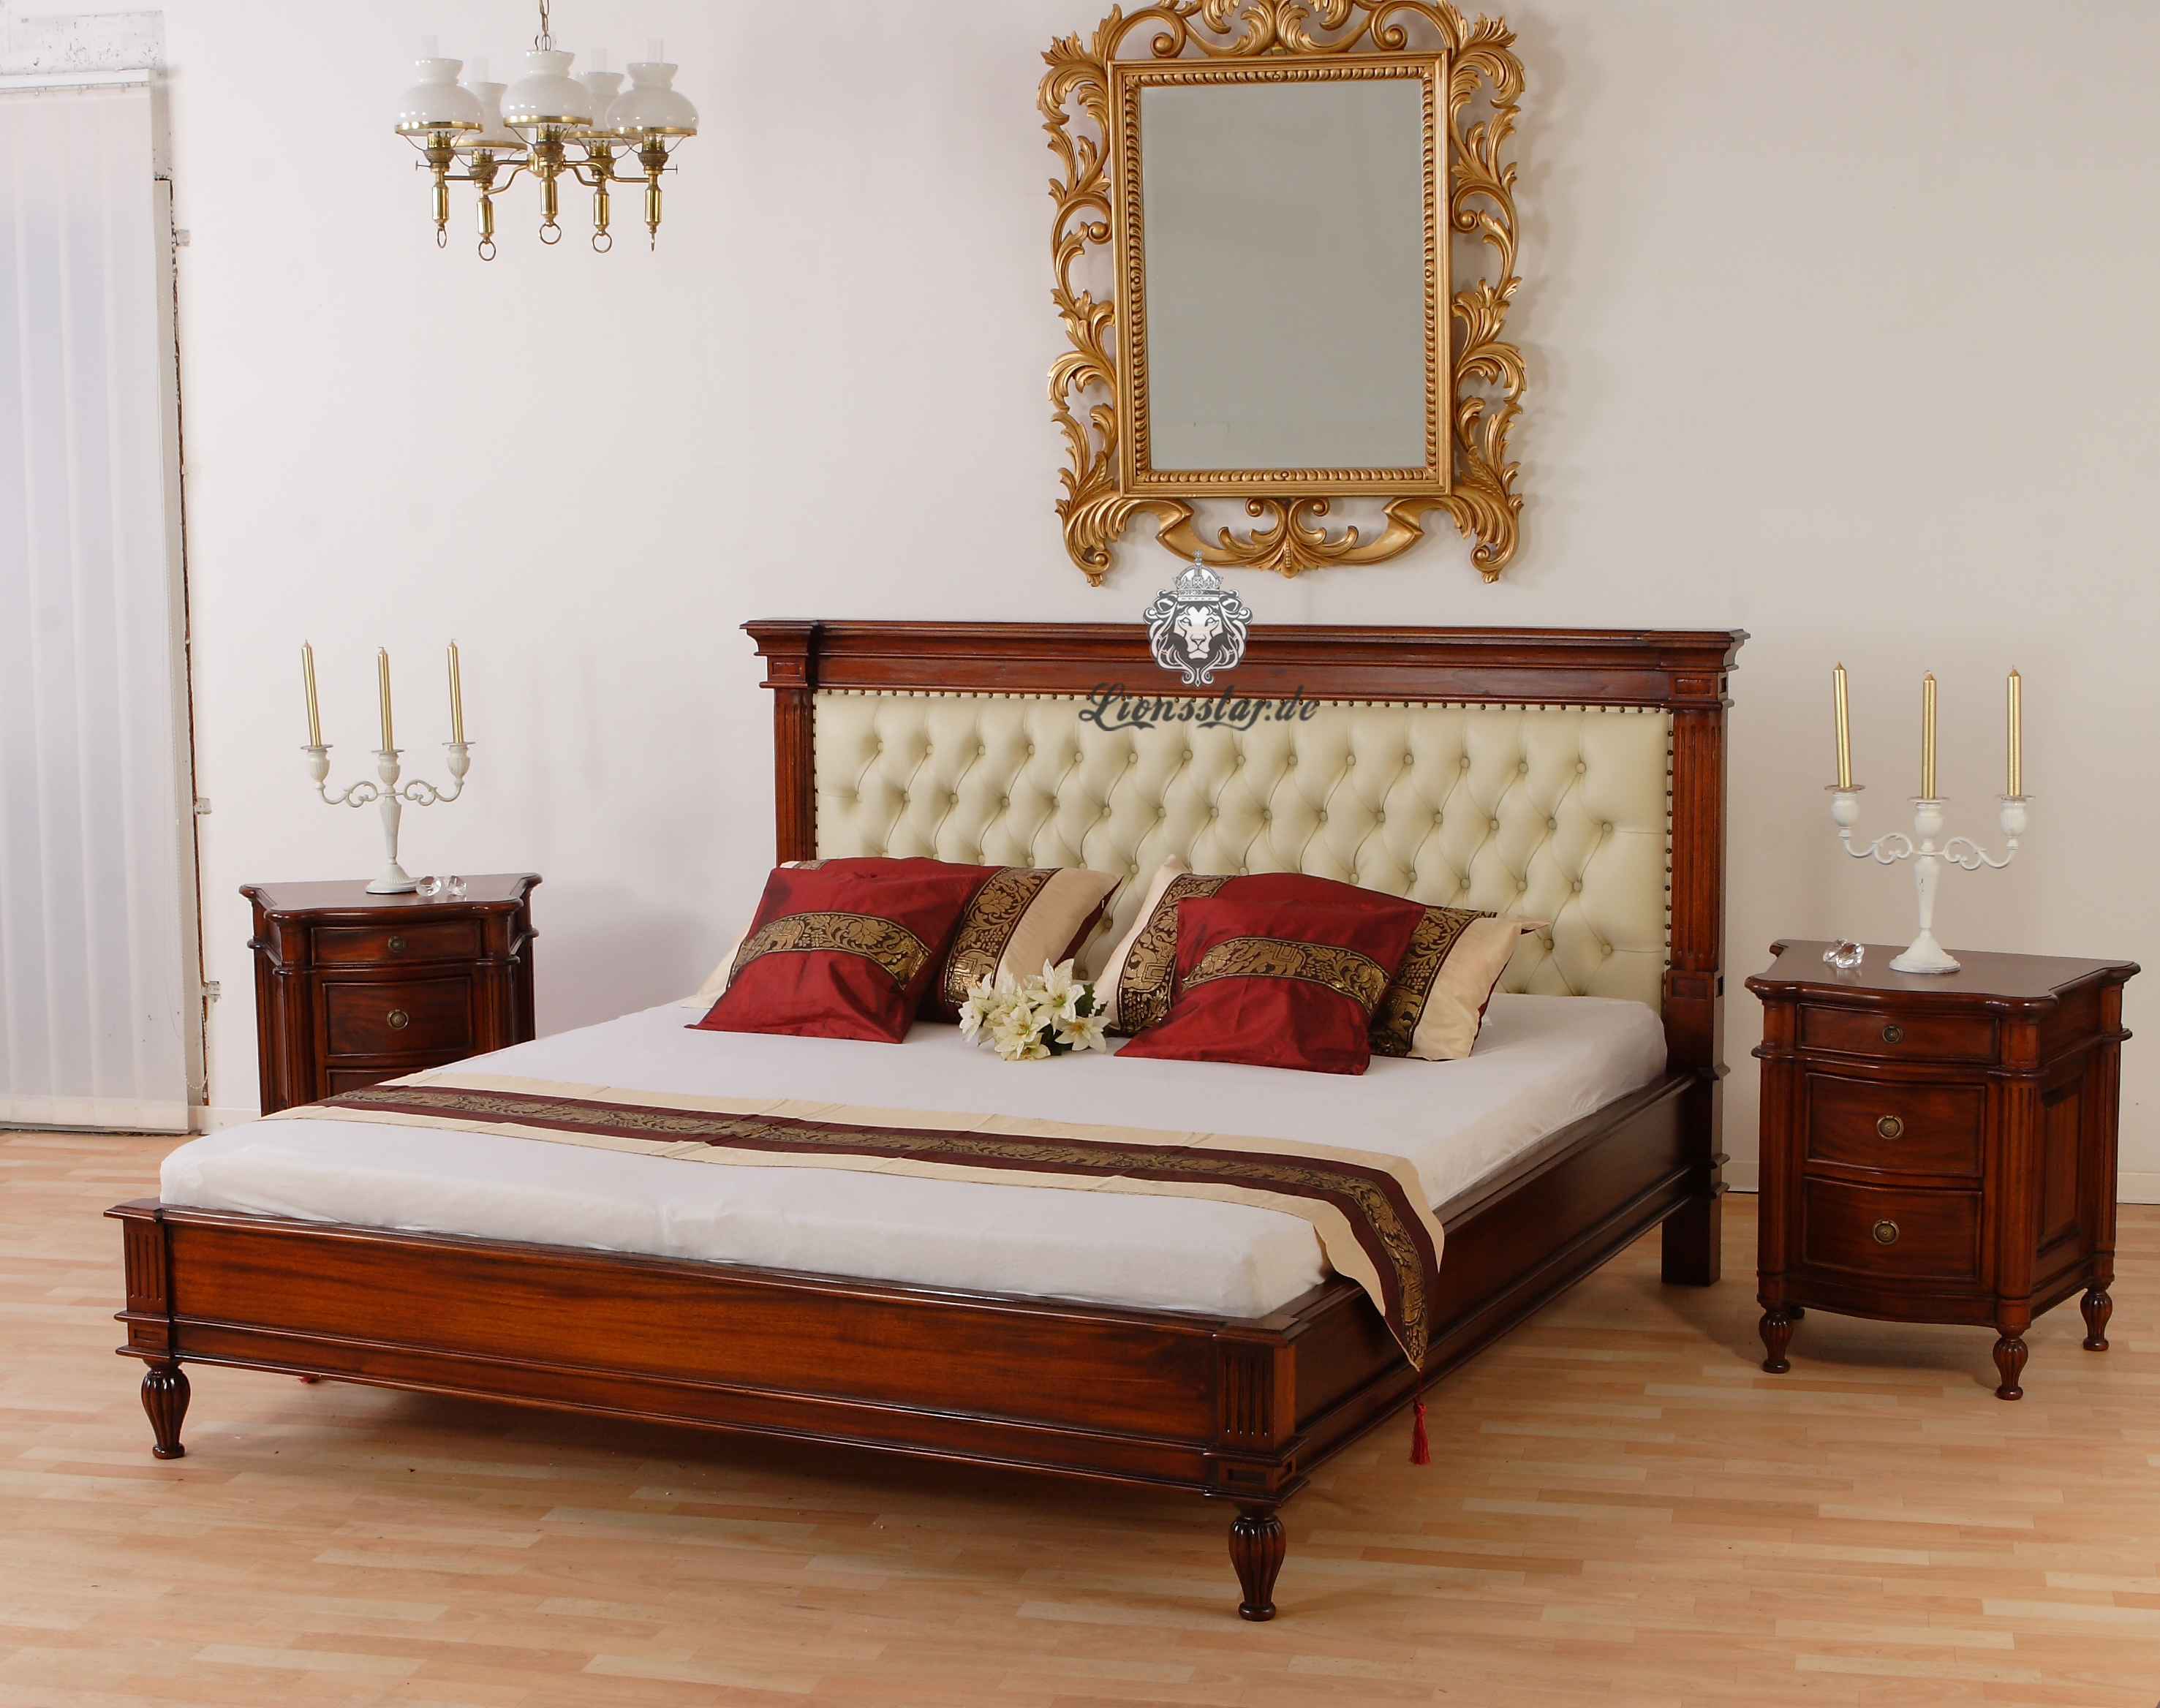 betten purer luxus lionsstar gmbh. Black Bedroom Furniture Sets. Home Design Ideas